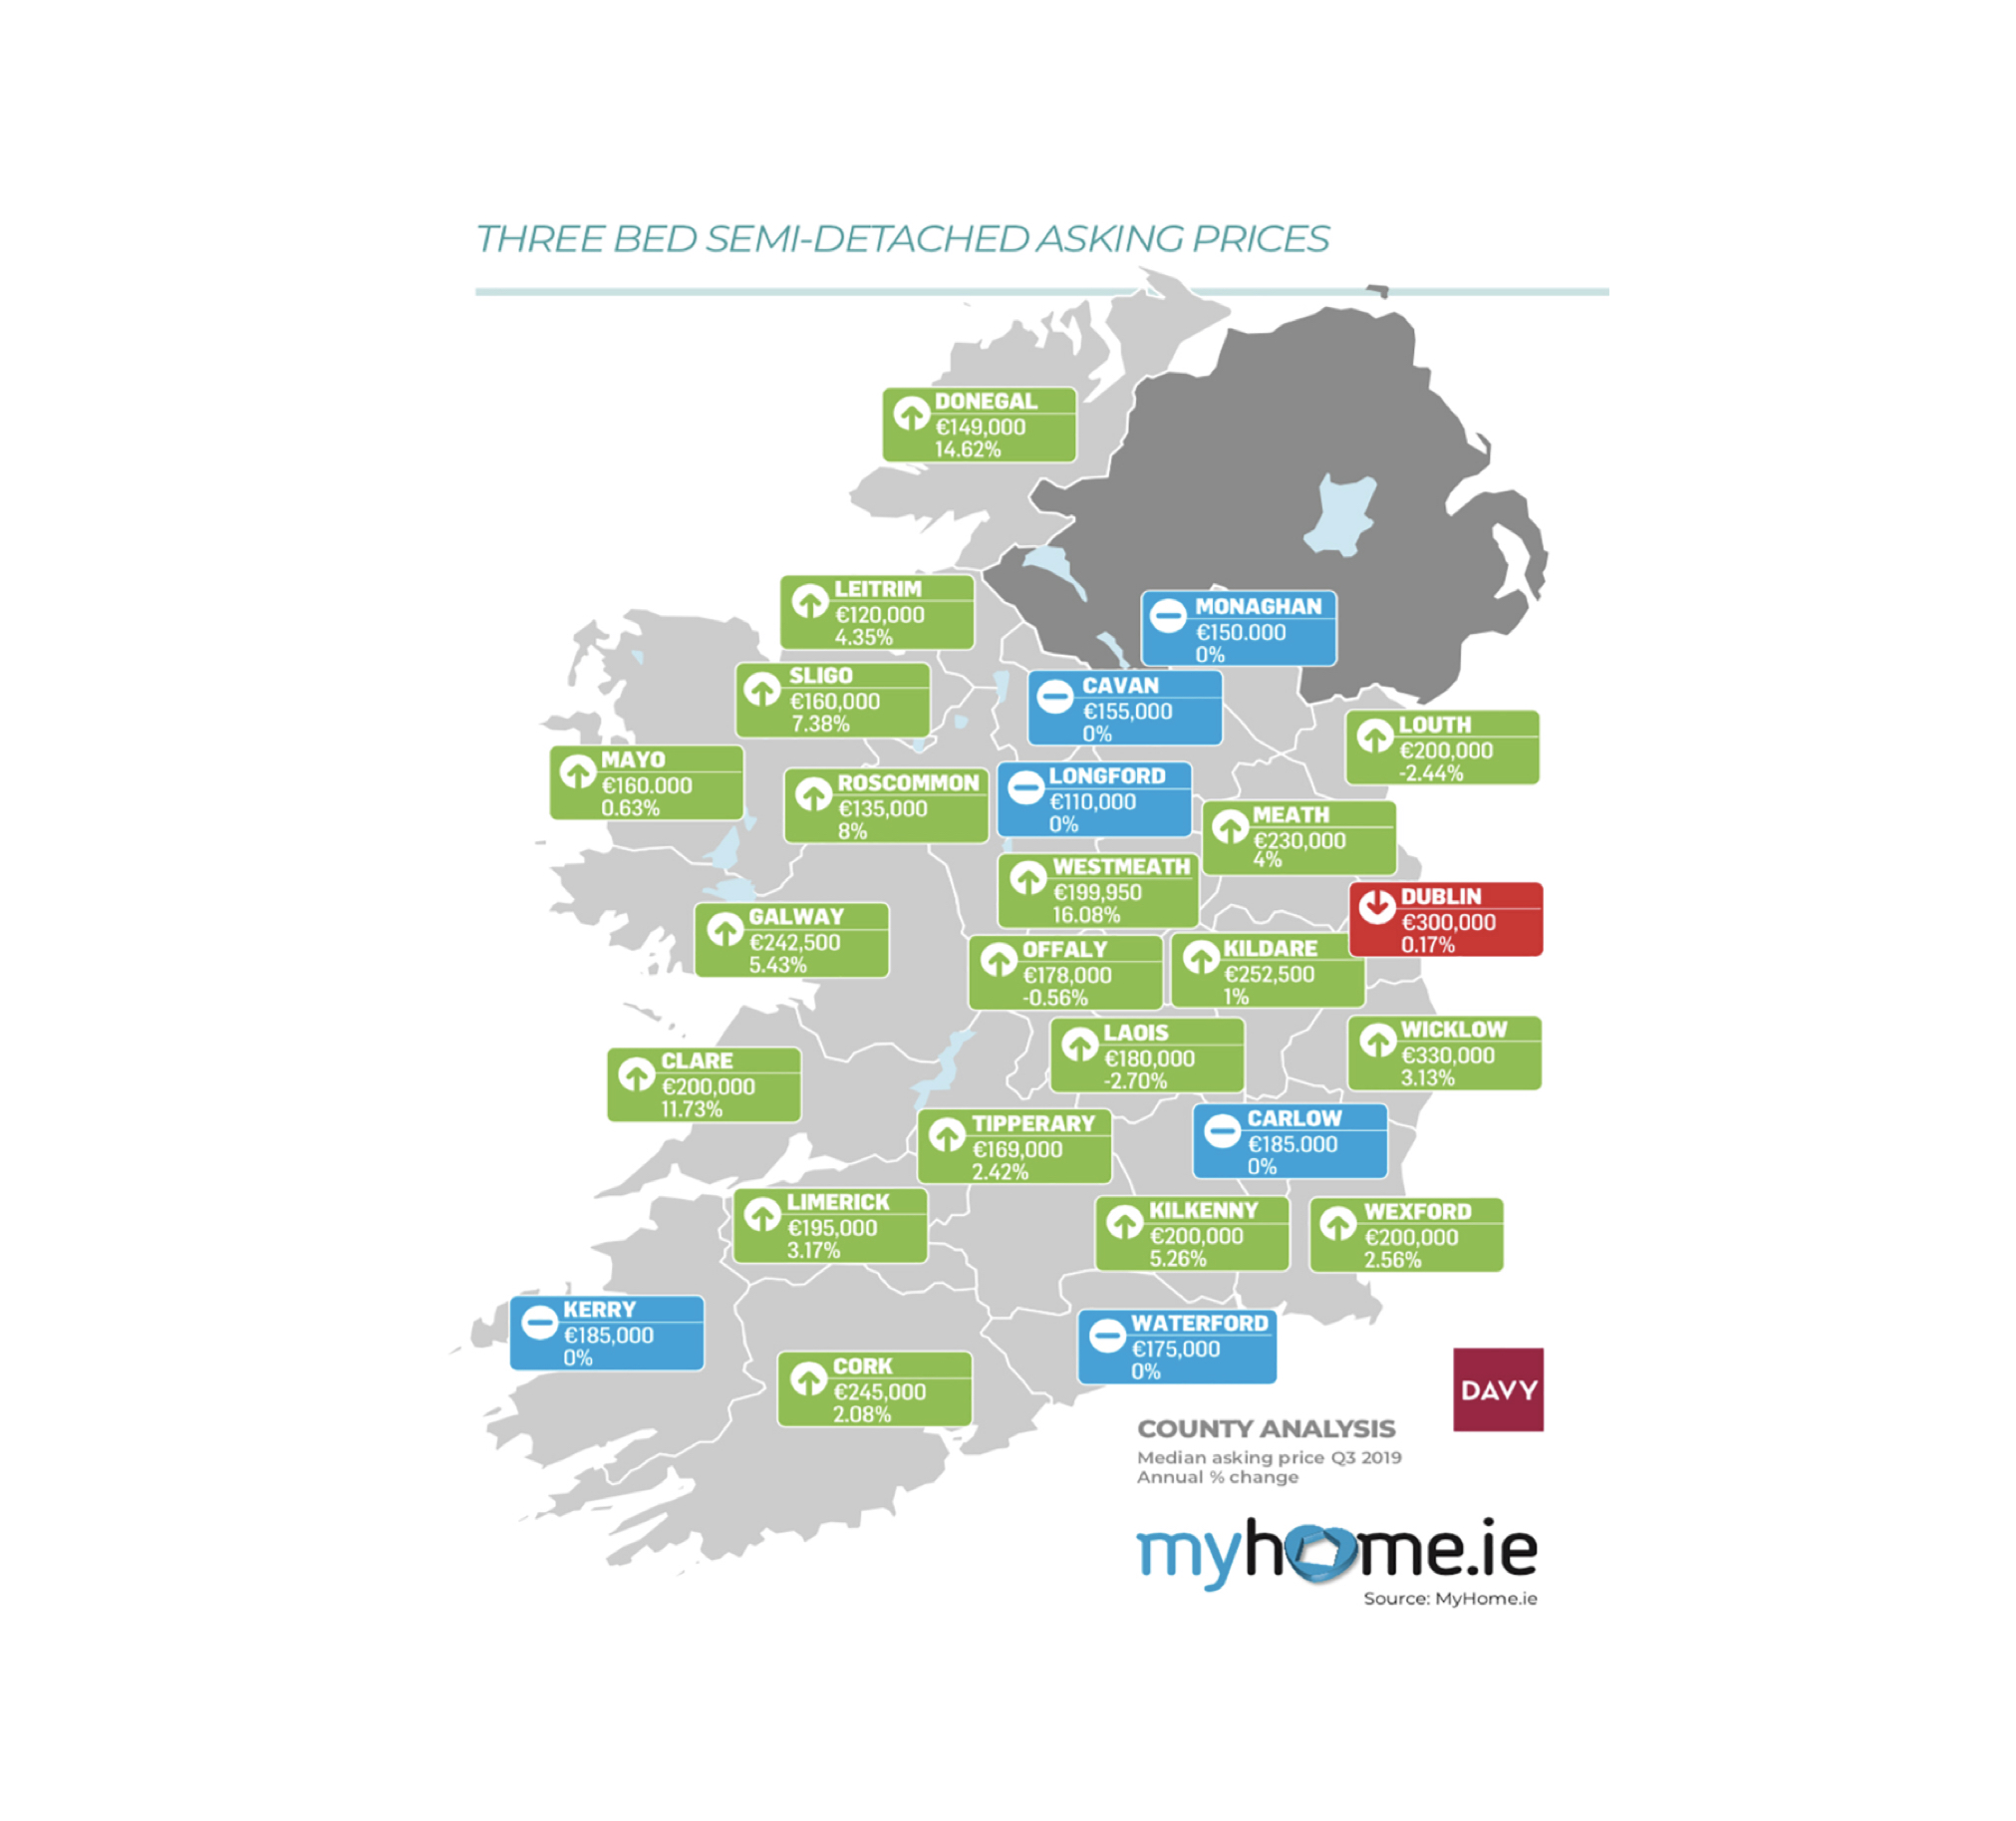 Irish house prices set to flatline by year end